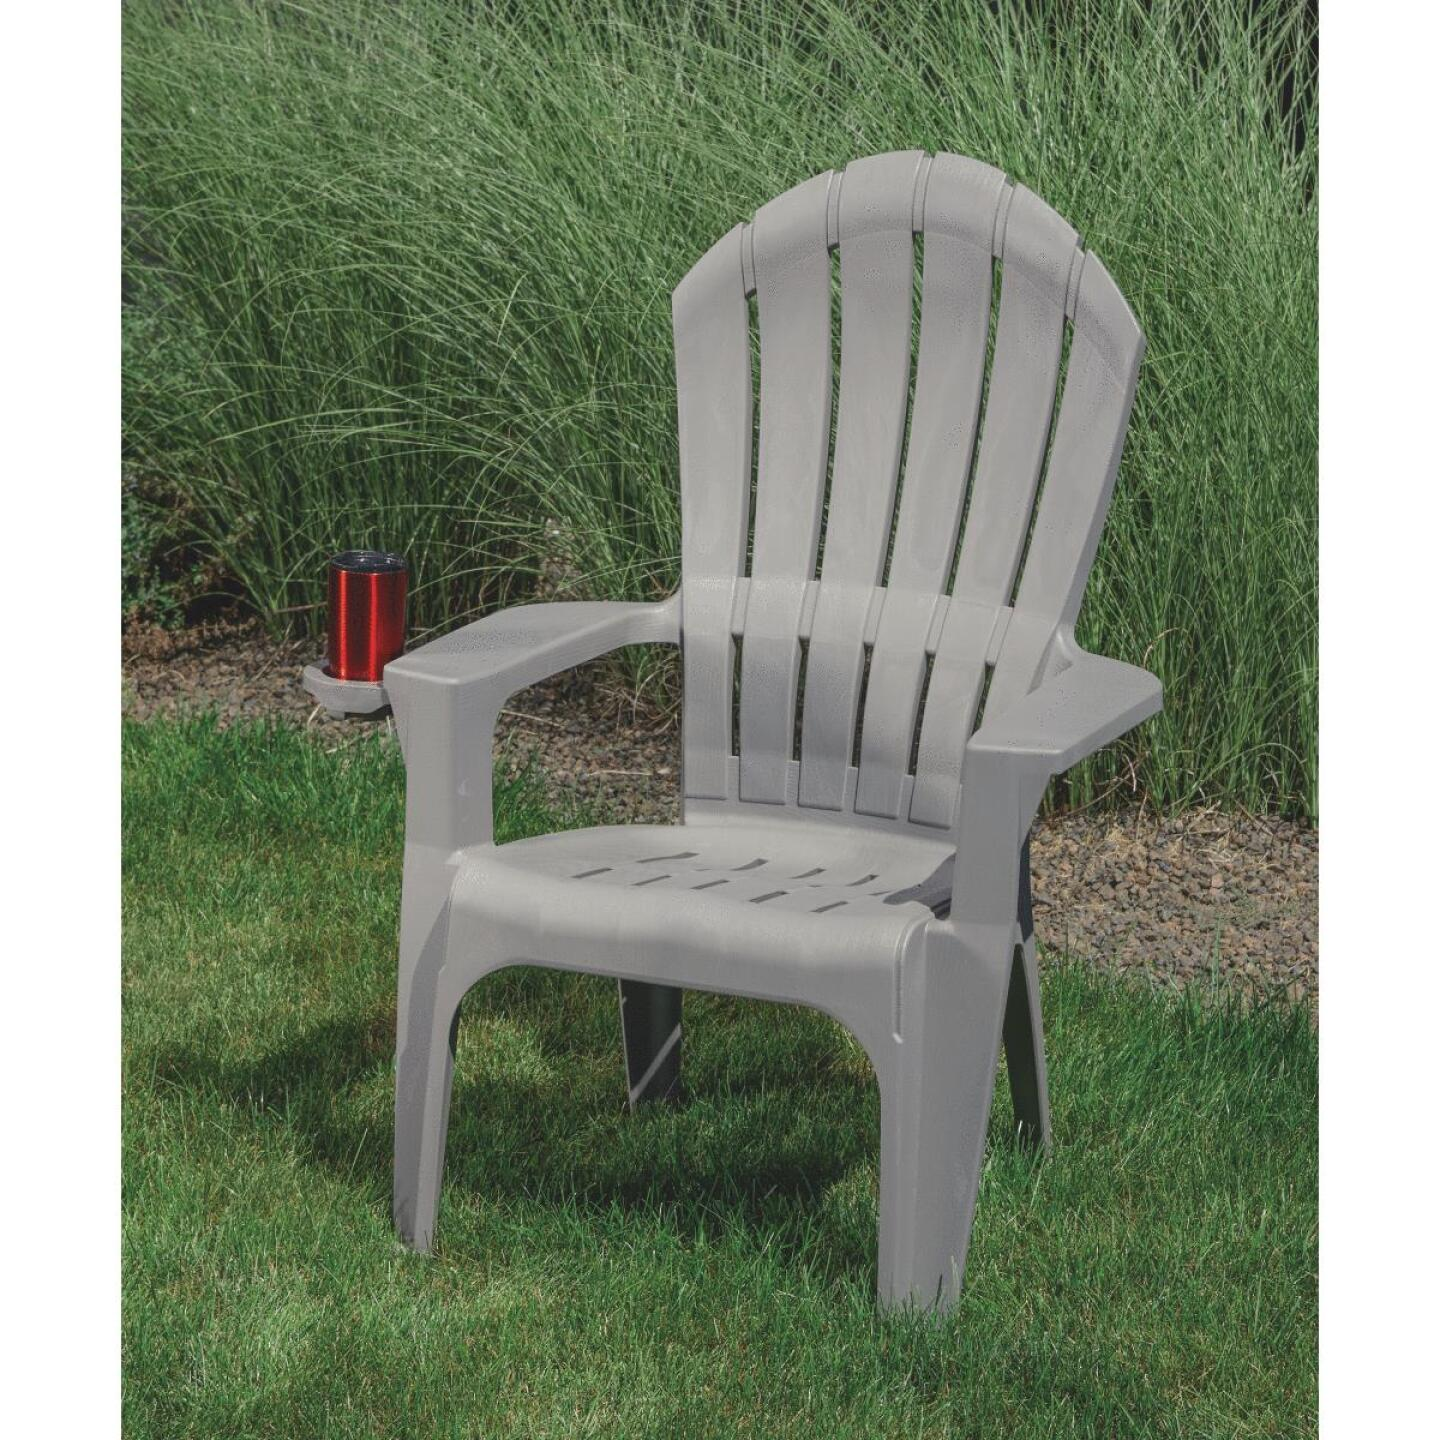 Adams Big Easy Gray Resin Adirondack Chair Image 5